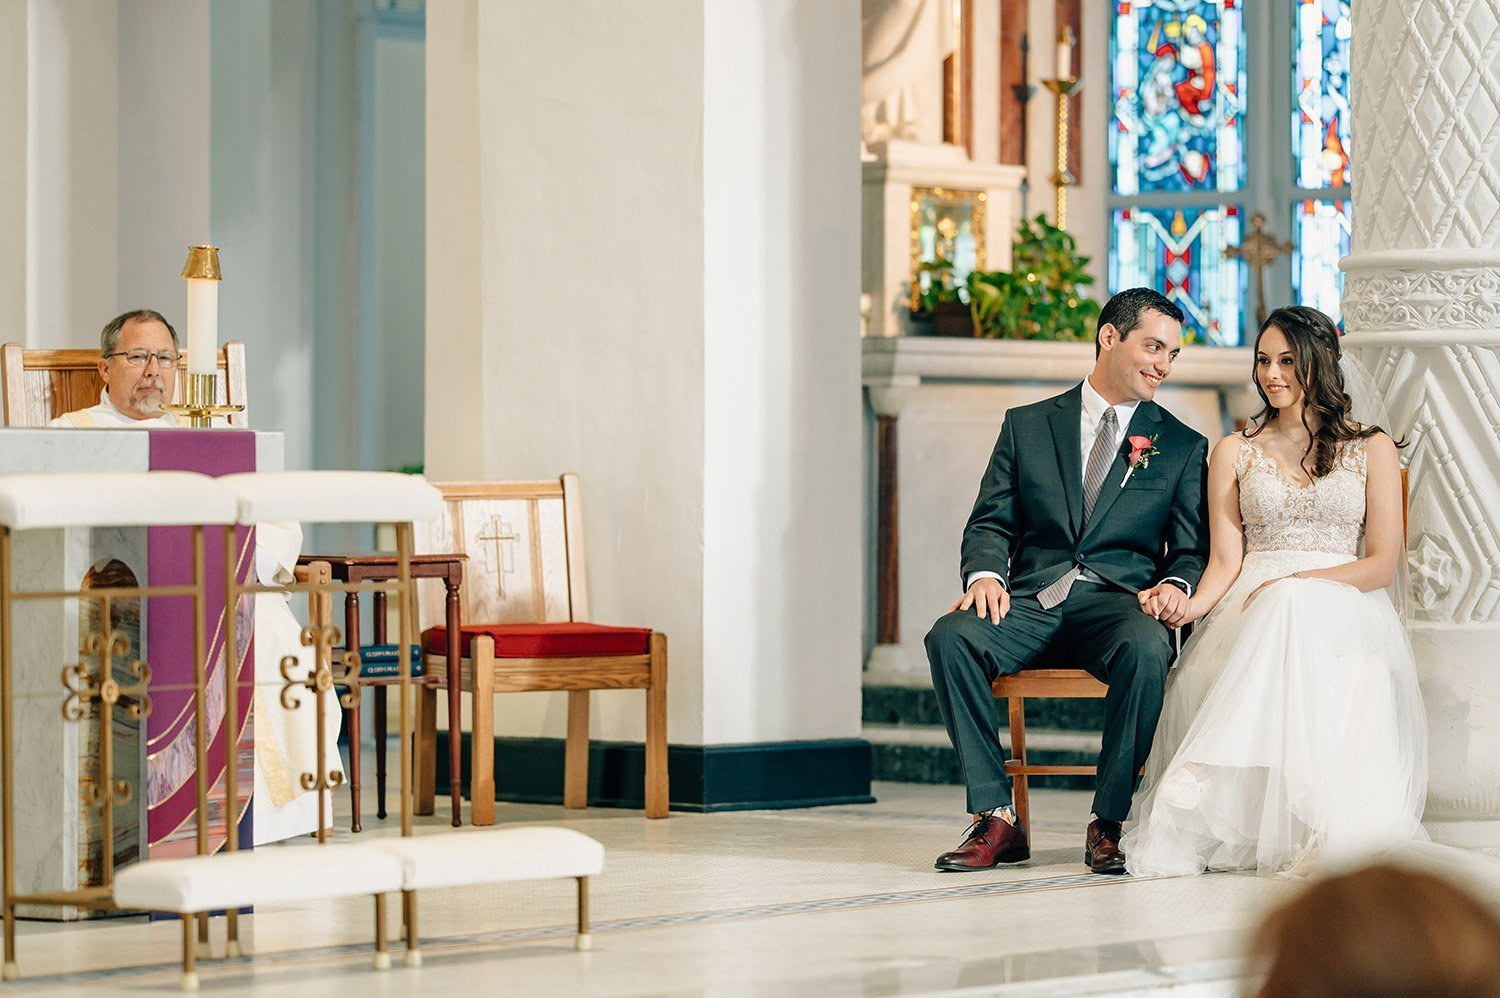 bride and groom laugh together during wedding homily